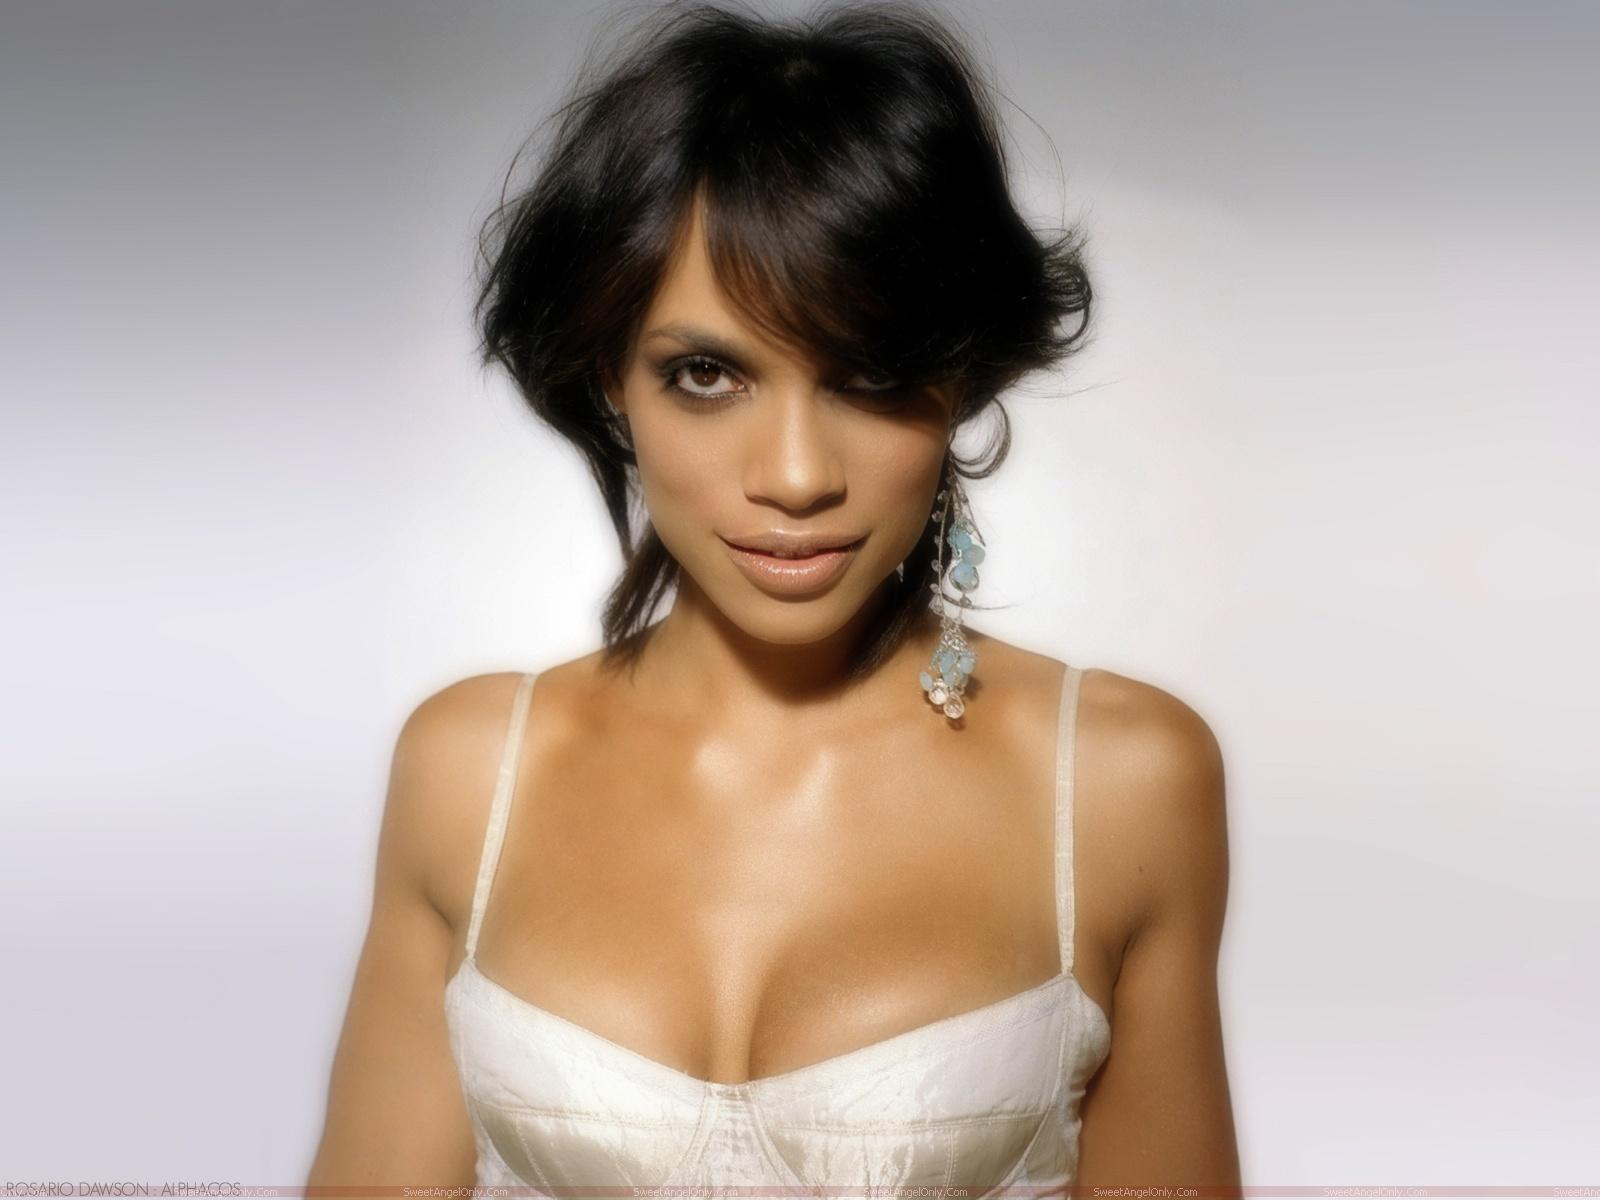 Rosario Dawson_click On The Image For Larger View